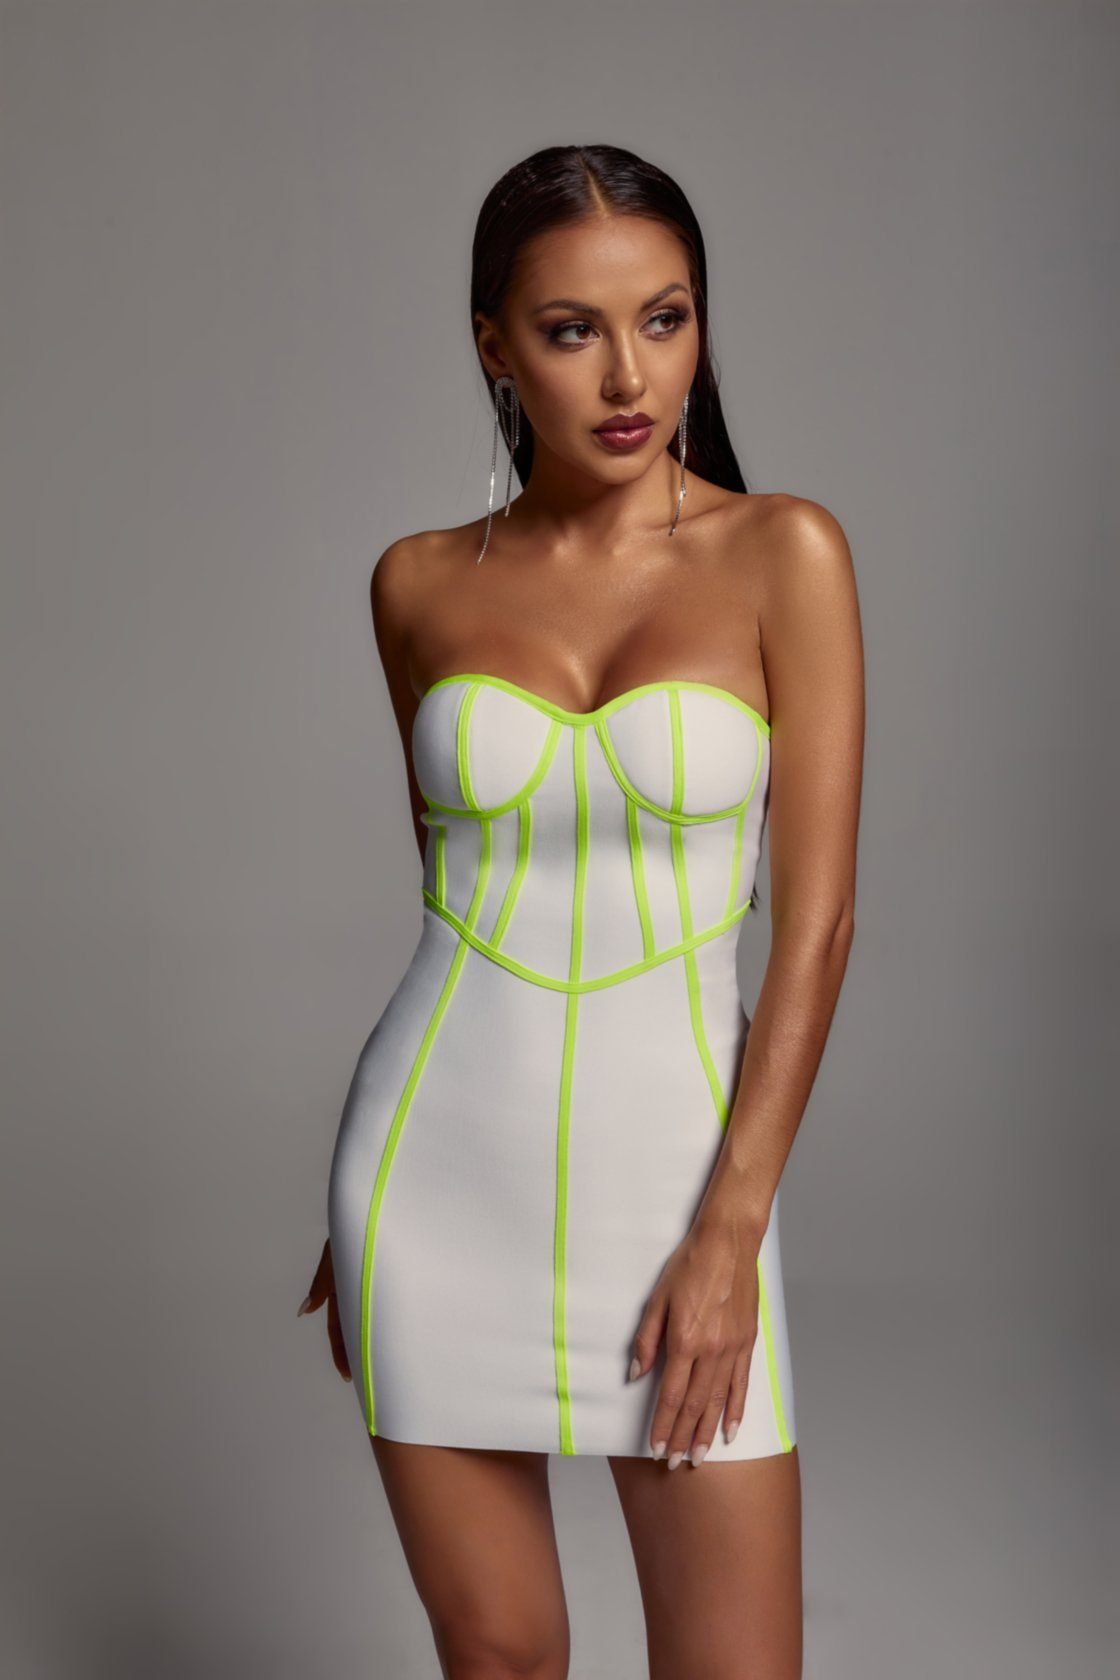 Neon Green Trim White Bandage Mini Dress -- Bellabarnett